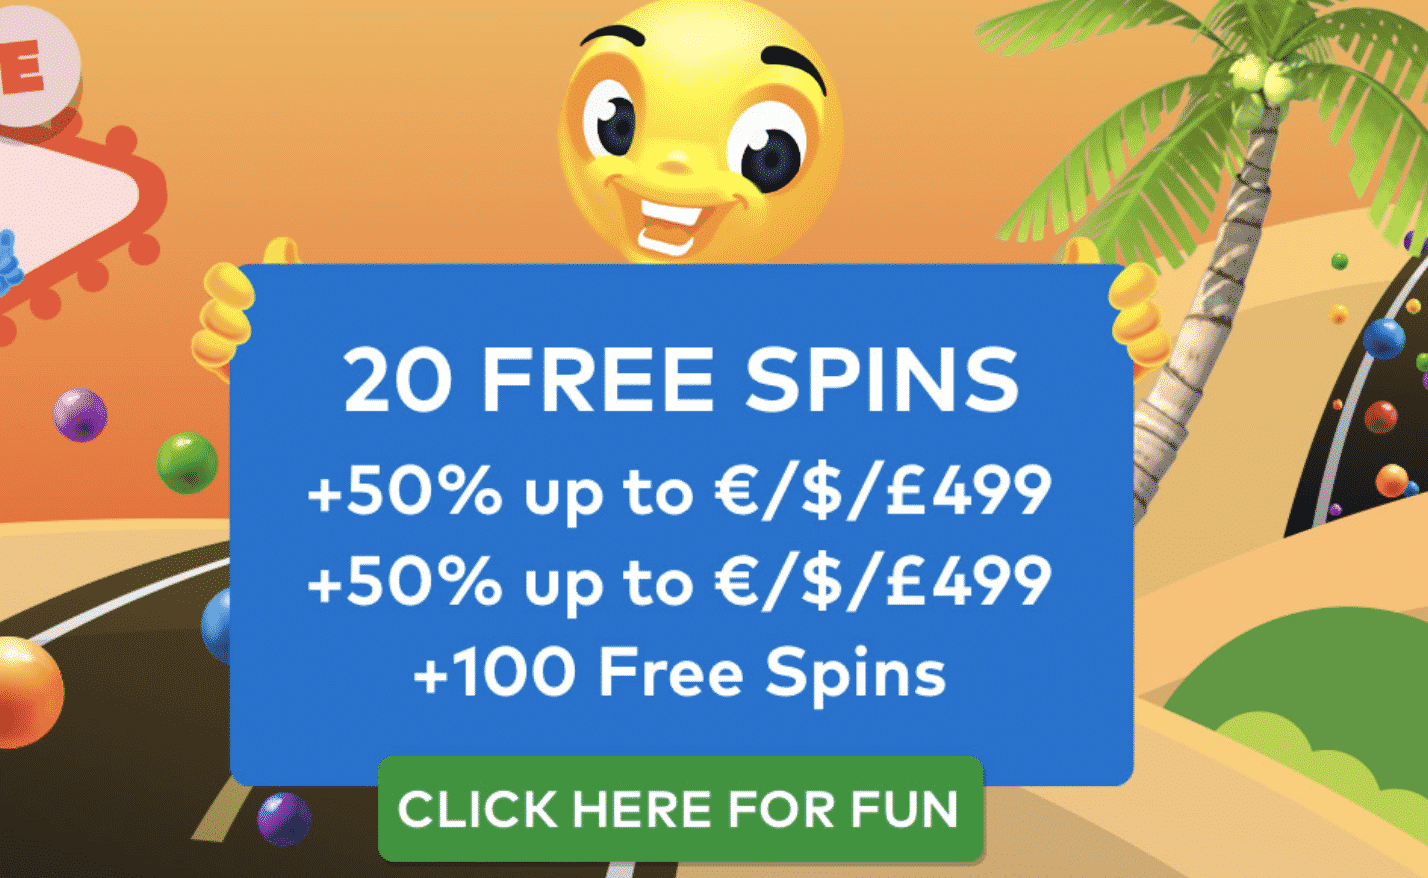 ★ Register and Get 20 Exclusive Free Spins at Fun Casino